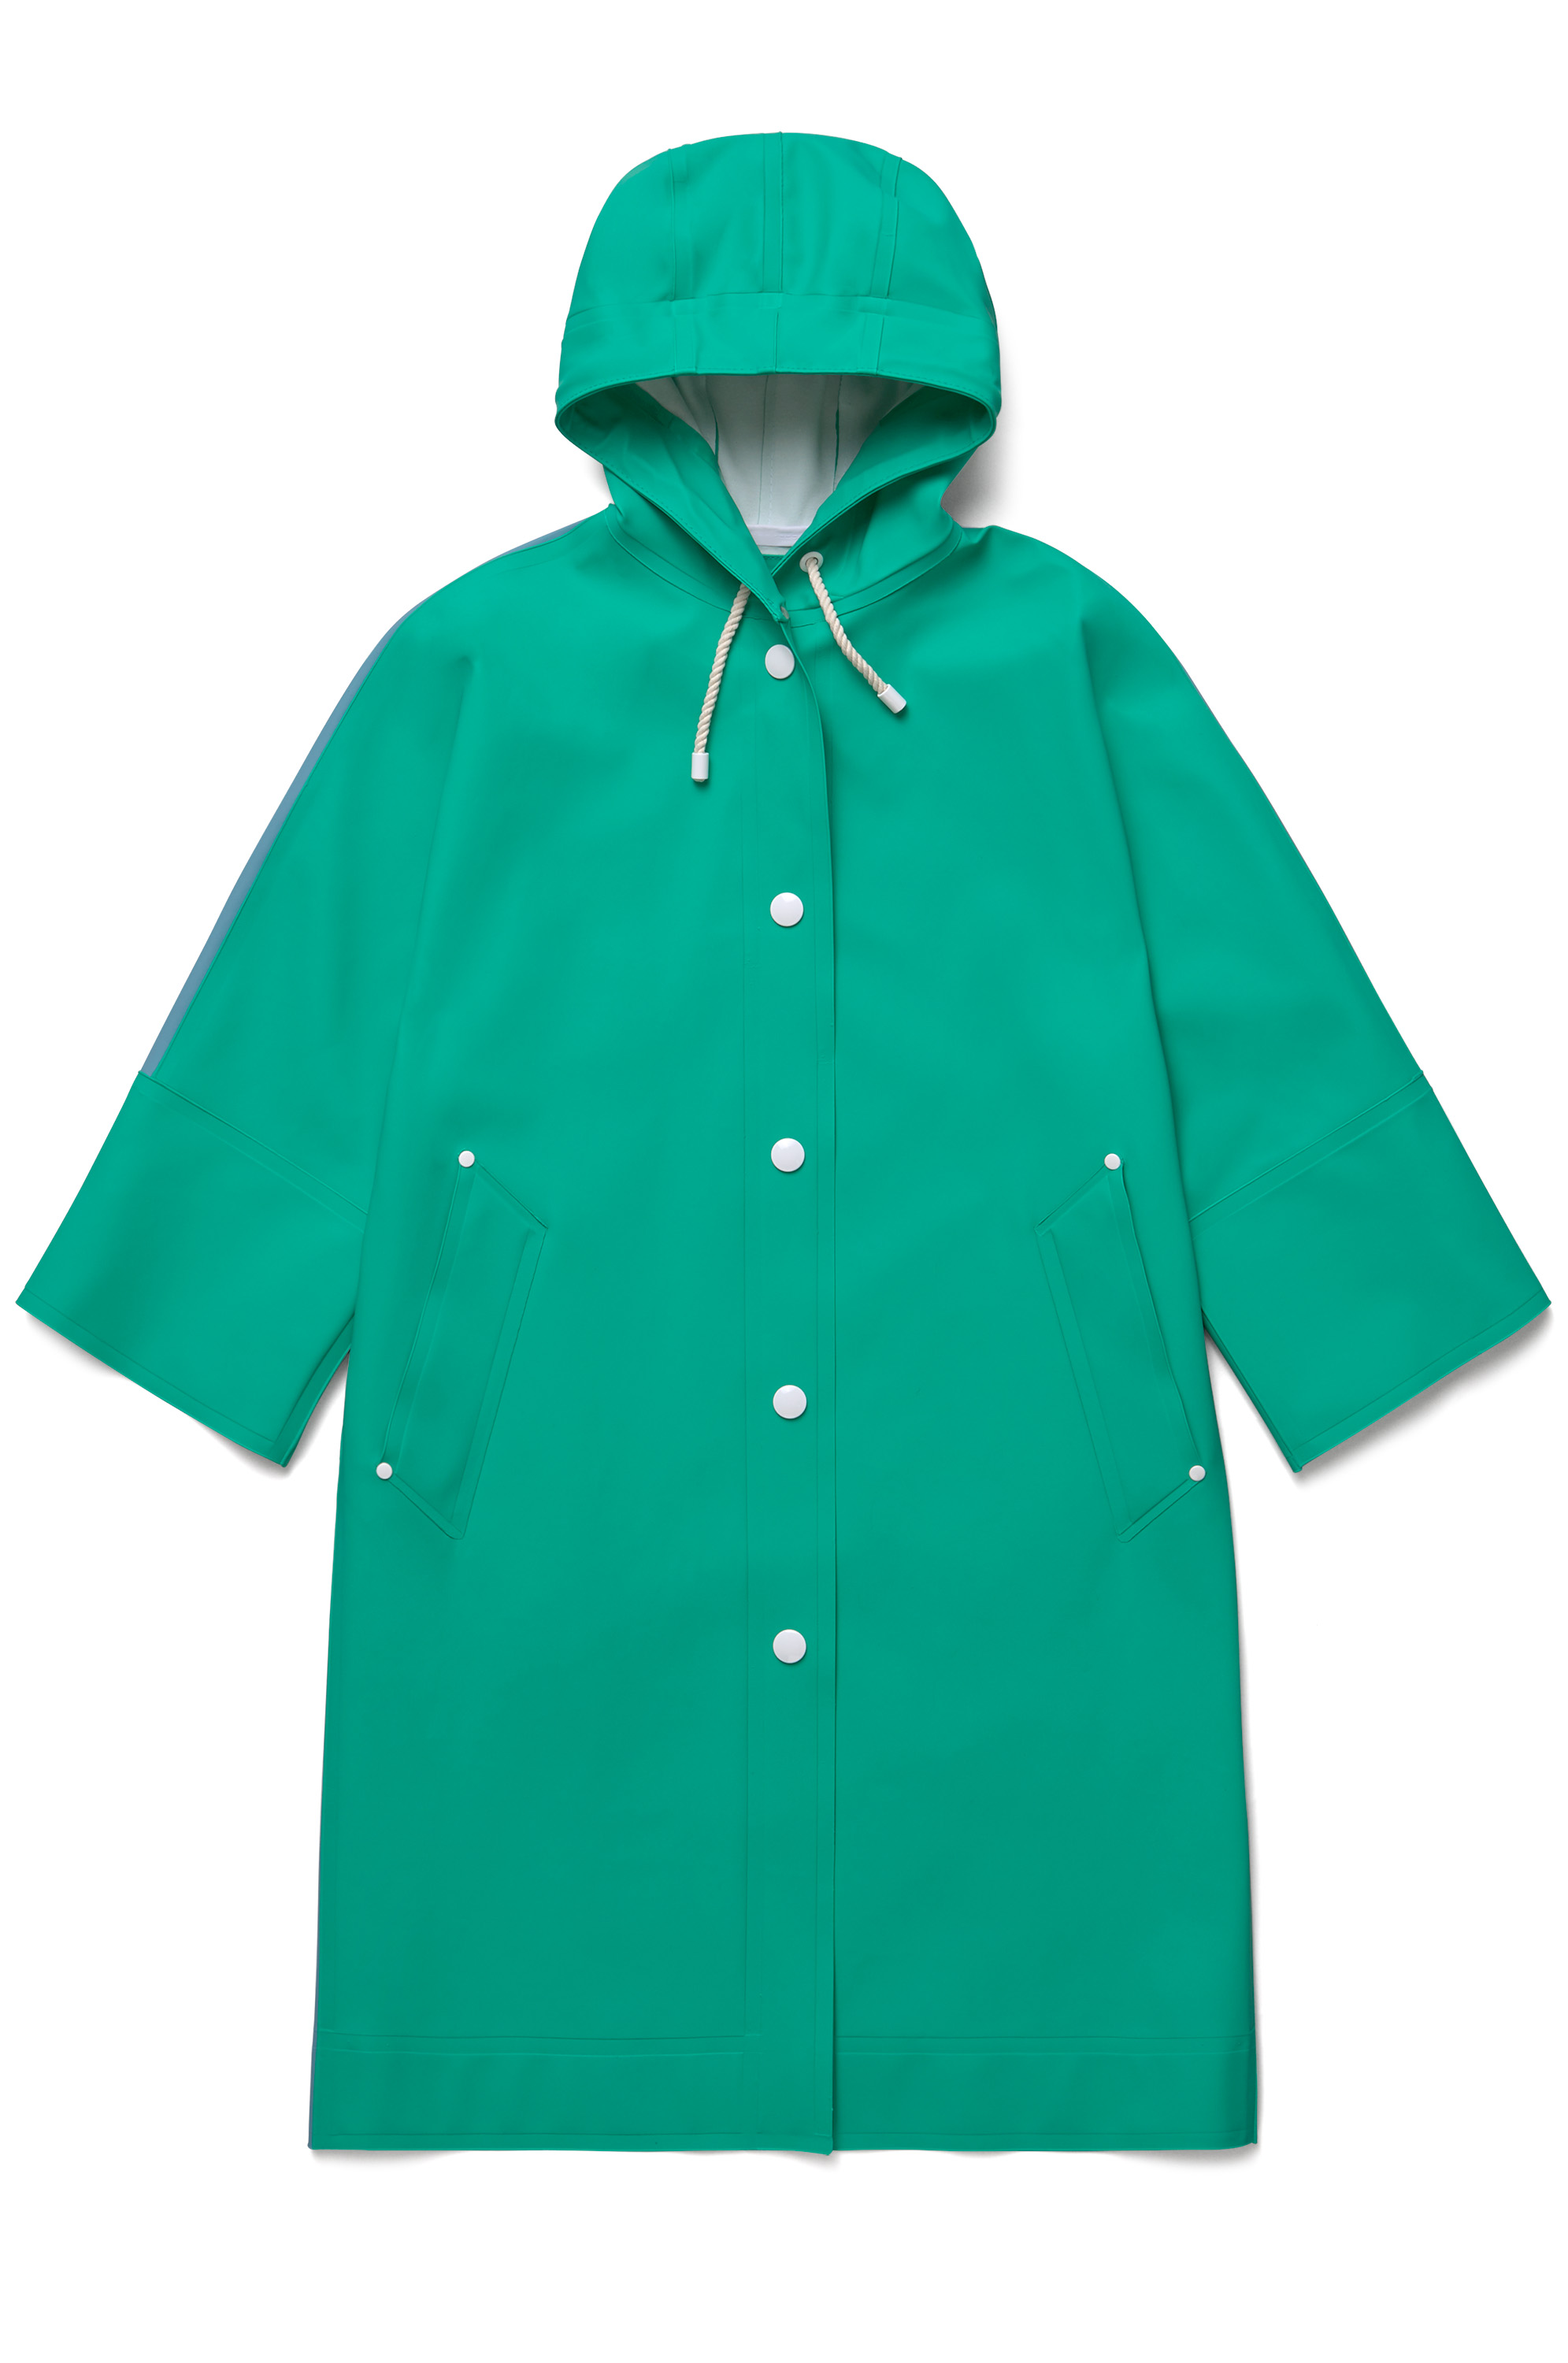 Stutterheim_Marni_SS18_Woman_VolumeCoat_EmeraldGreenBlock_Product